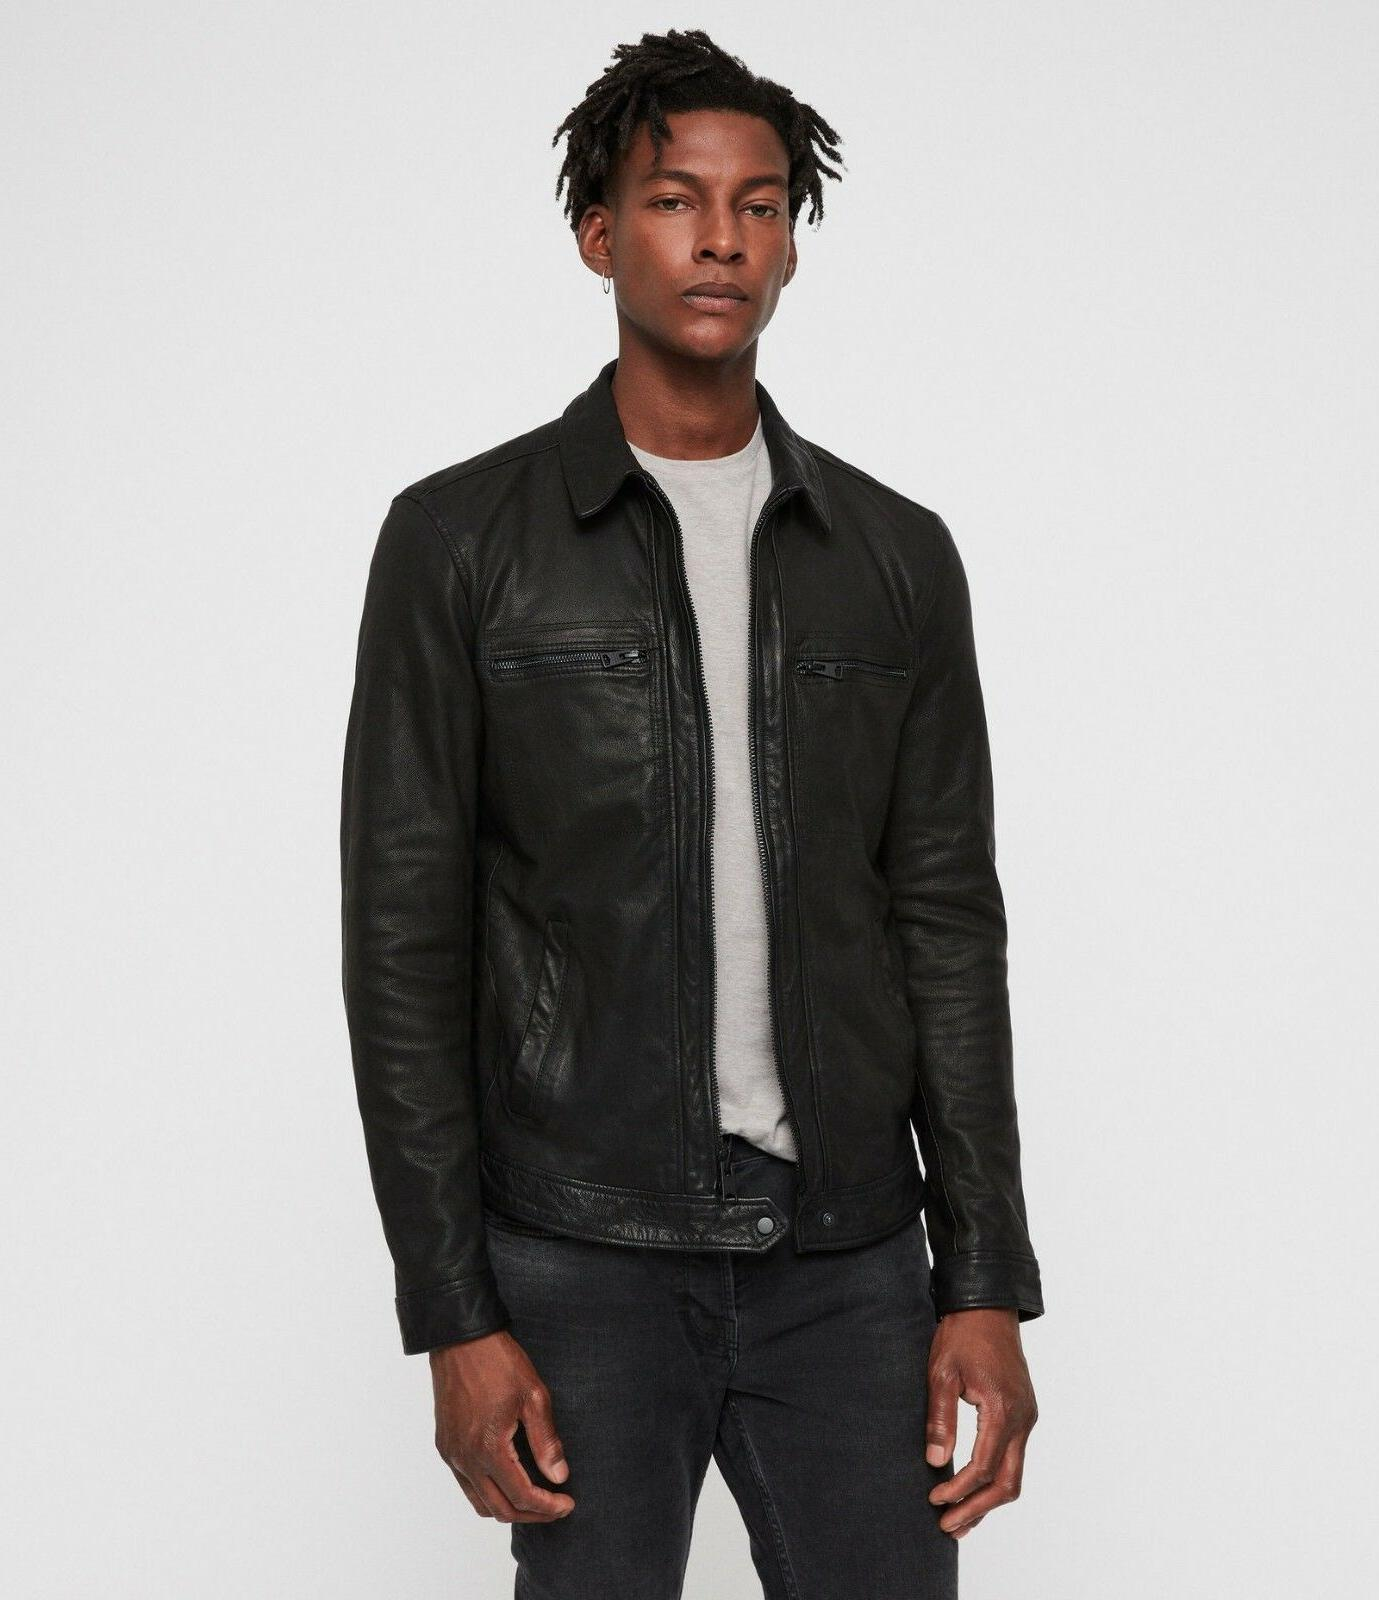 BNWT Lark Leather Worldwide Shipping Delivery